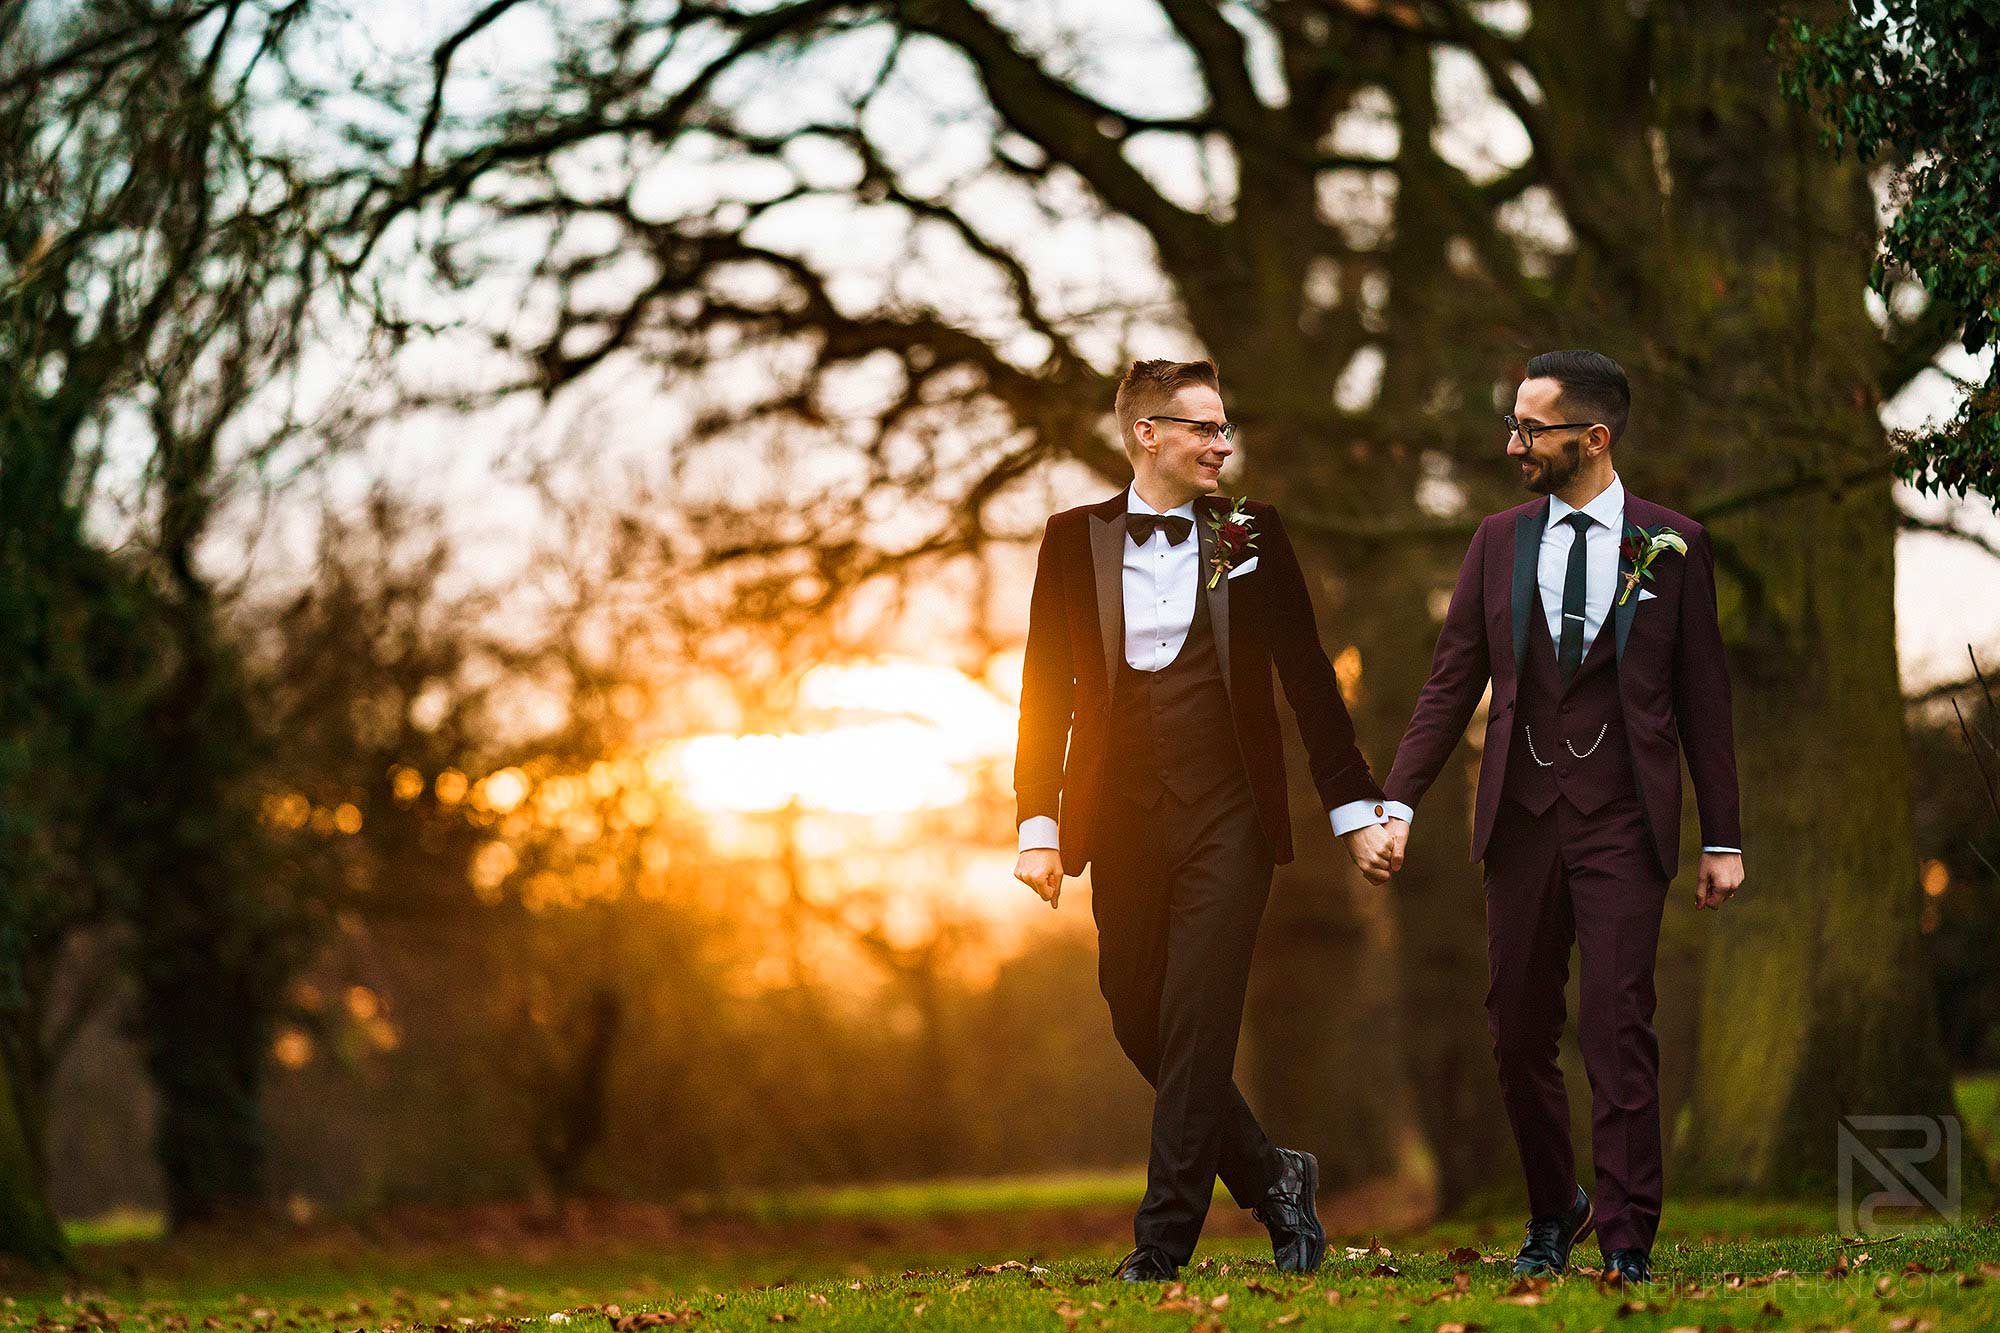 sunset photograph of two grooms walking